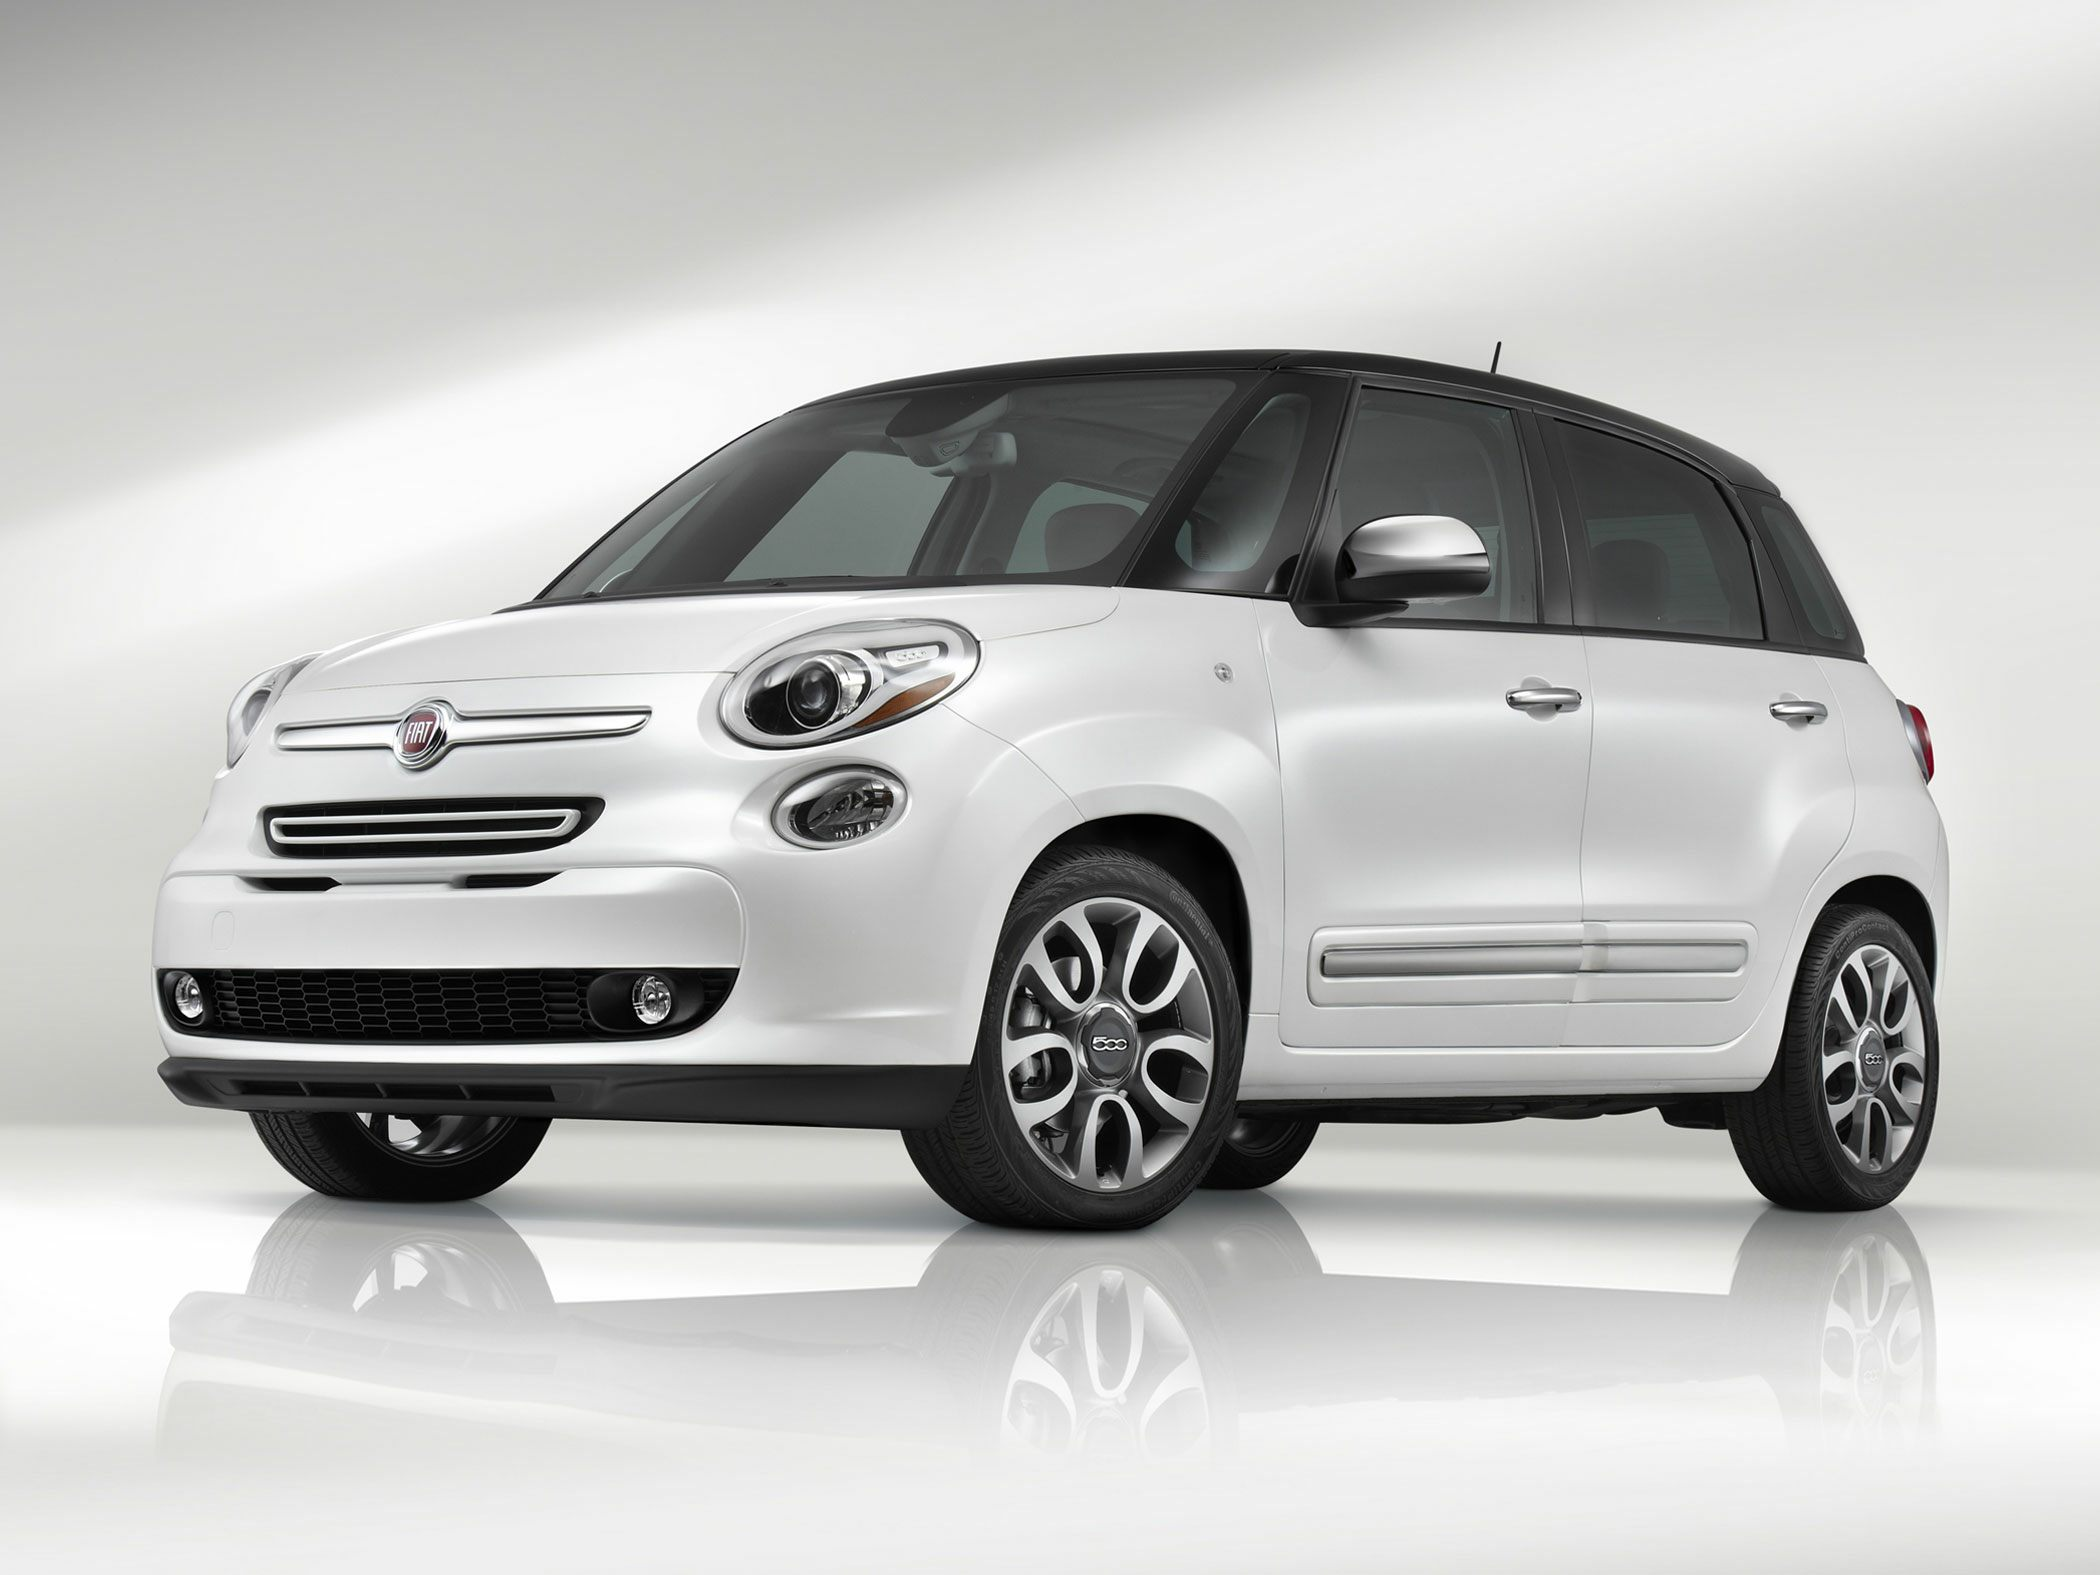 now interior includes mid news dash screen pictures facelift revealed colour new car official pics leasing s first fiat of look